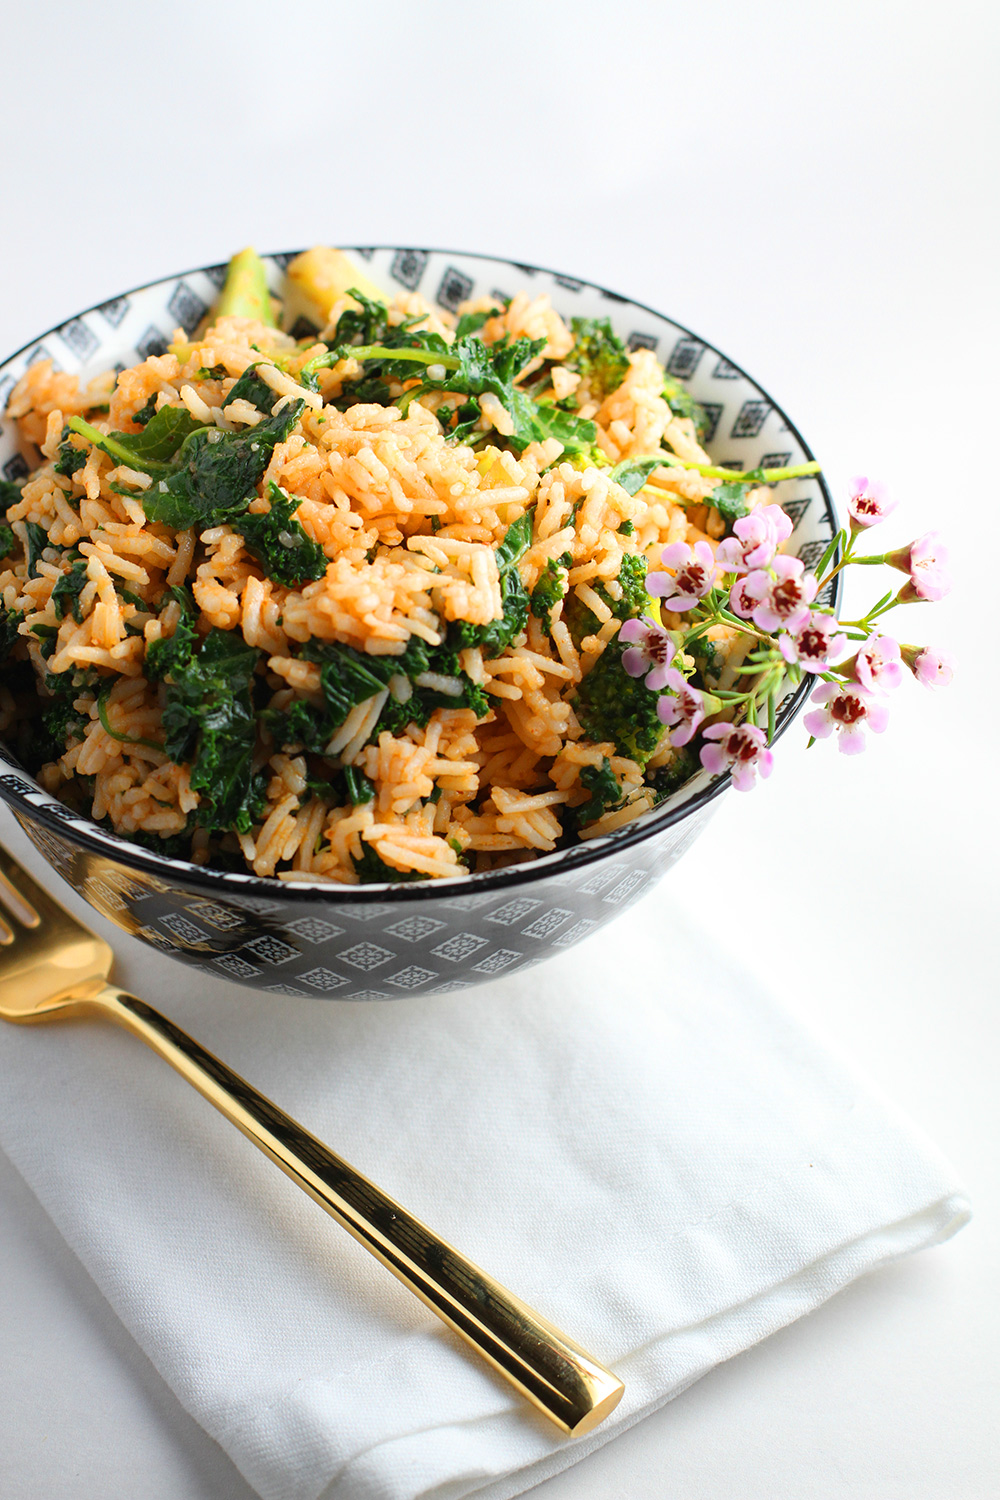 Rice Stir Fry with Broccoli + Kale